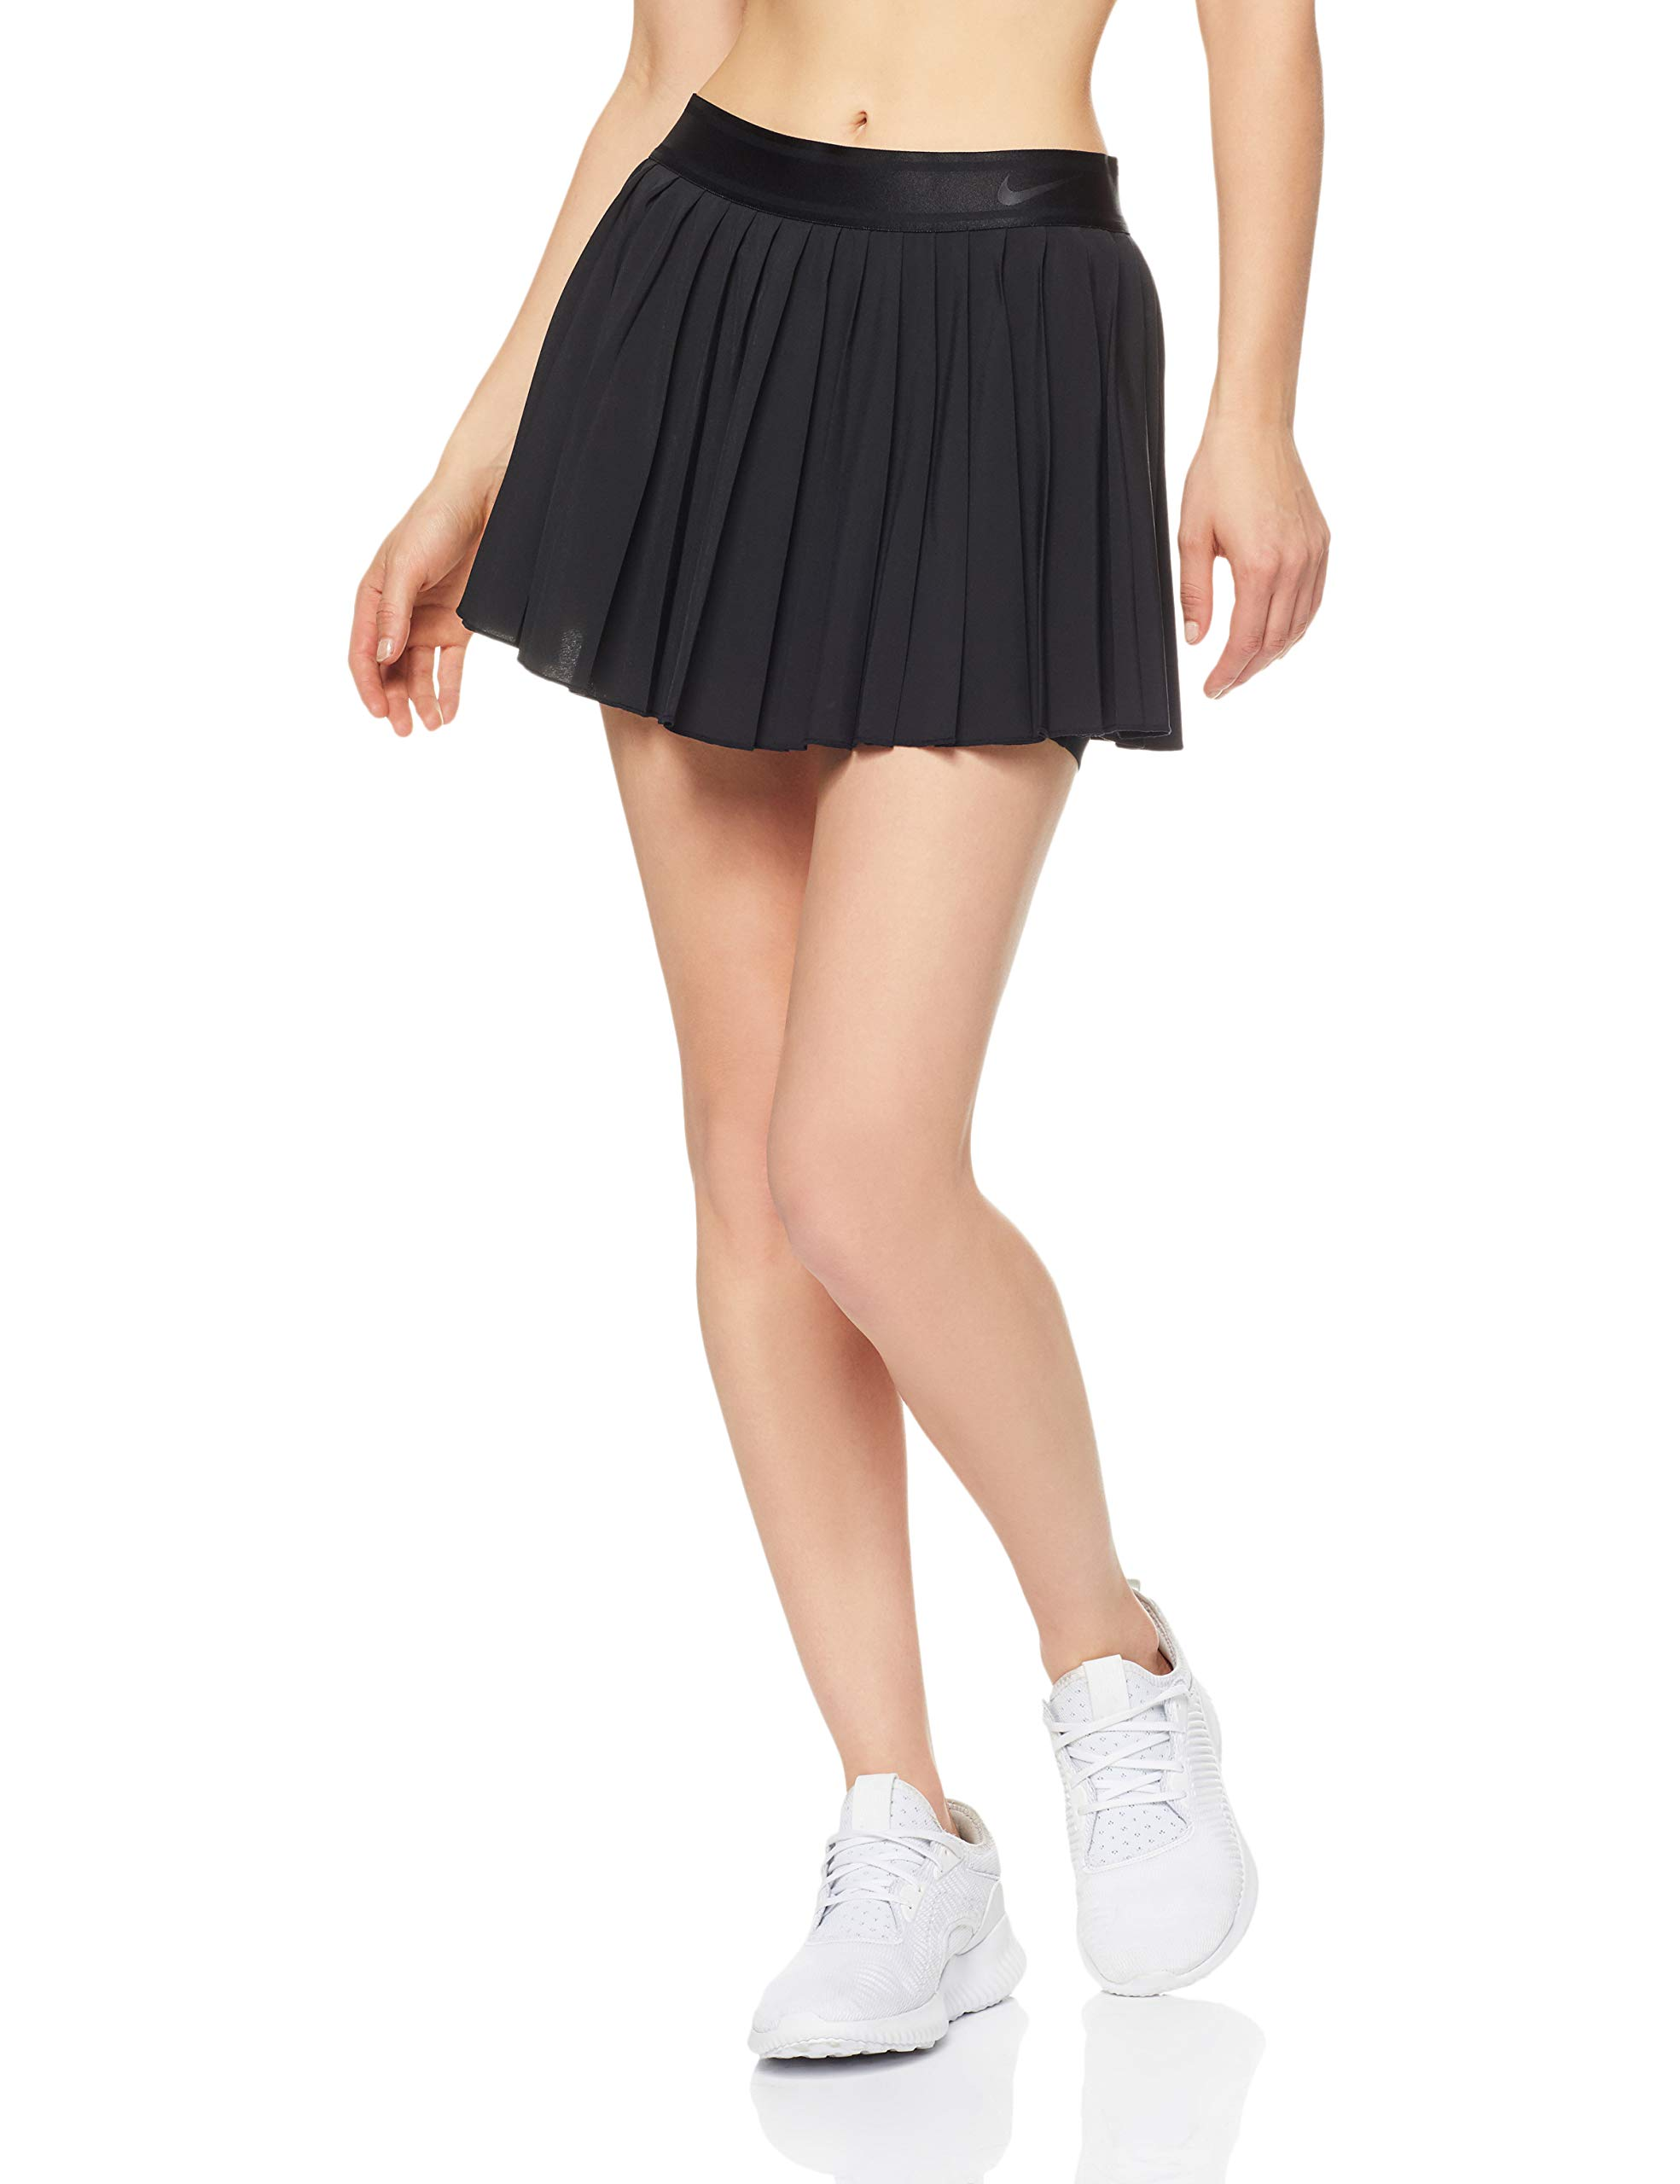 Nike Women's Court Victory Tennis Skirt (Black/Black/Black, X-Small) by Nike (Image #1)